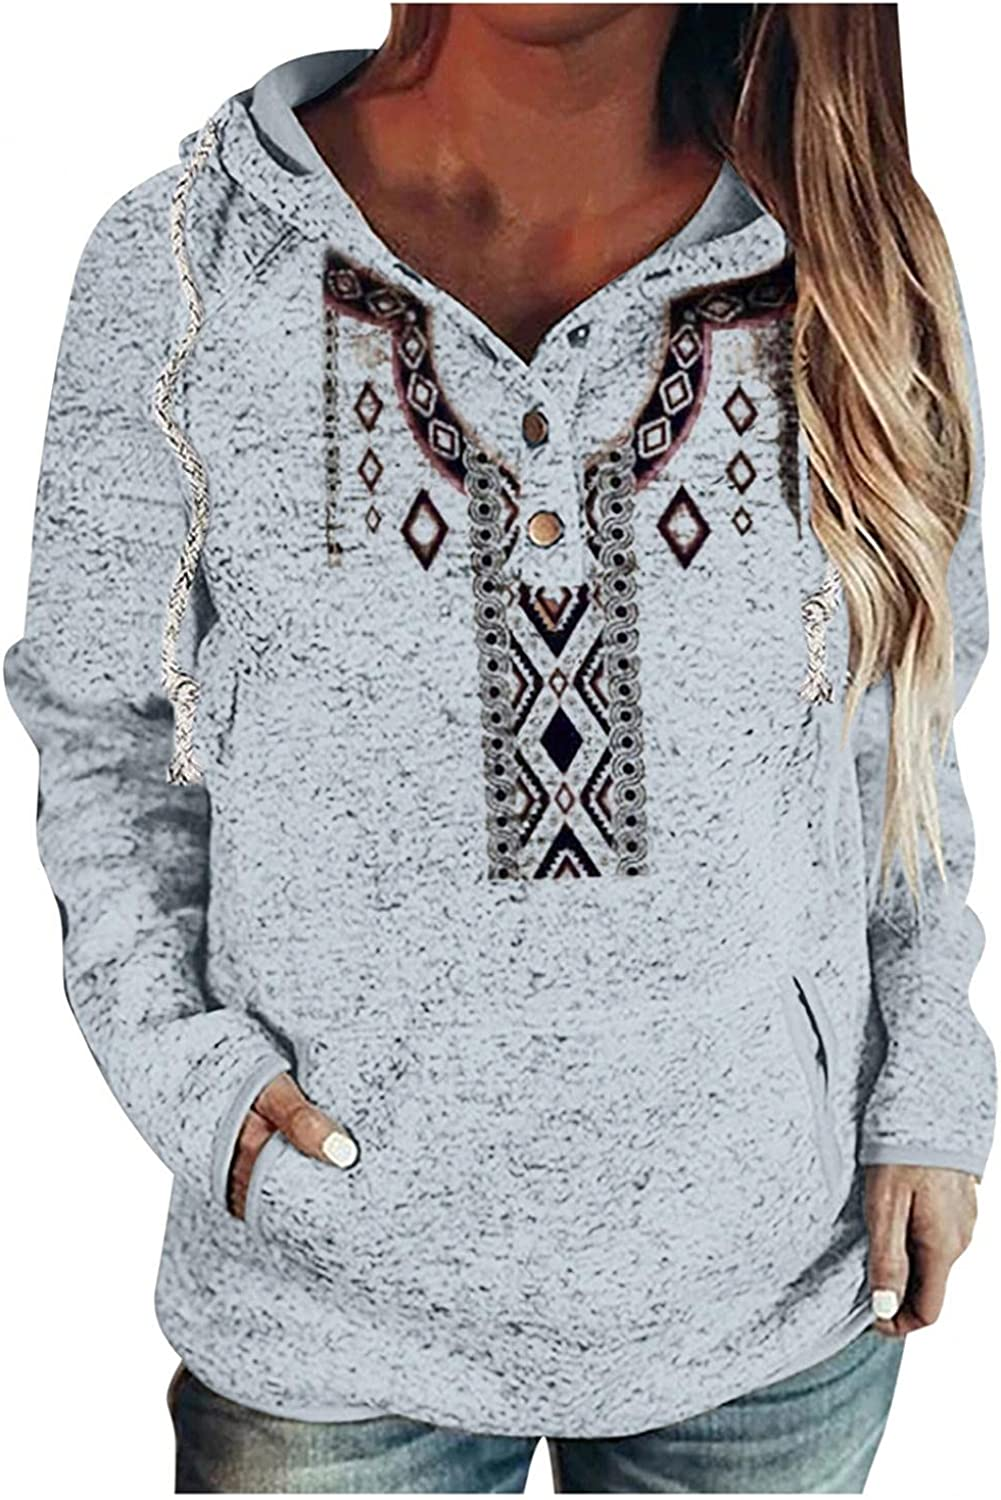 UOCUFY Hoodies for Women, Womens Halloween Hoodie Sweatshirts Casual Long Sleeve Pullover Hooded Tops with Pockets